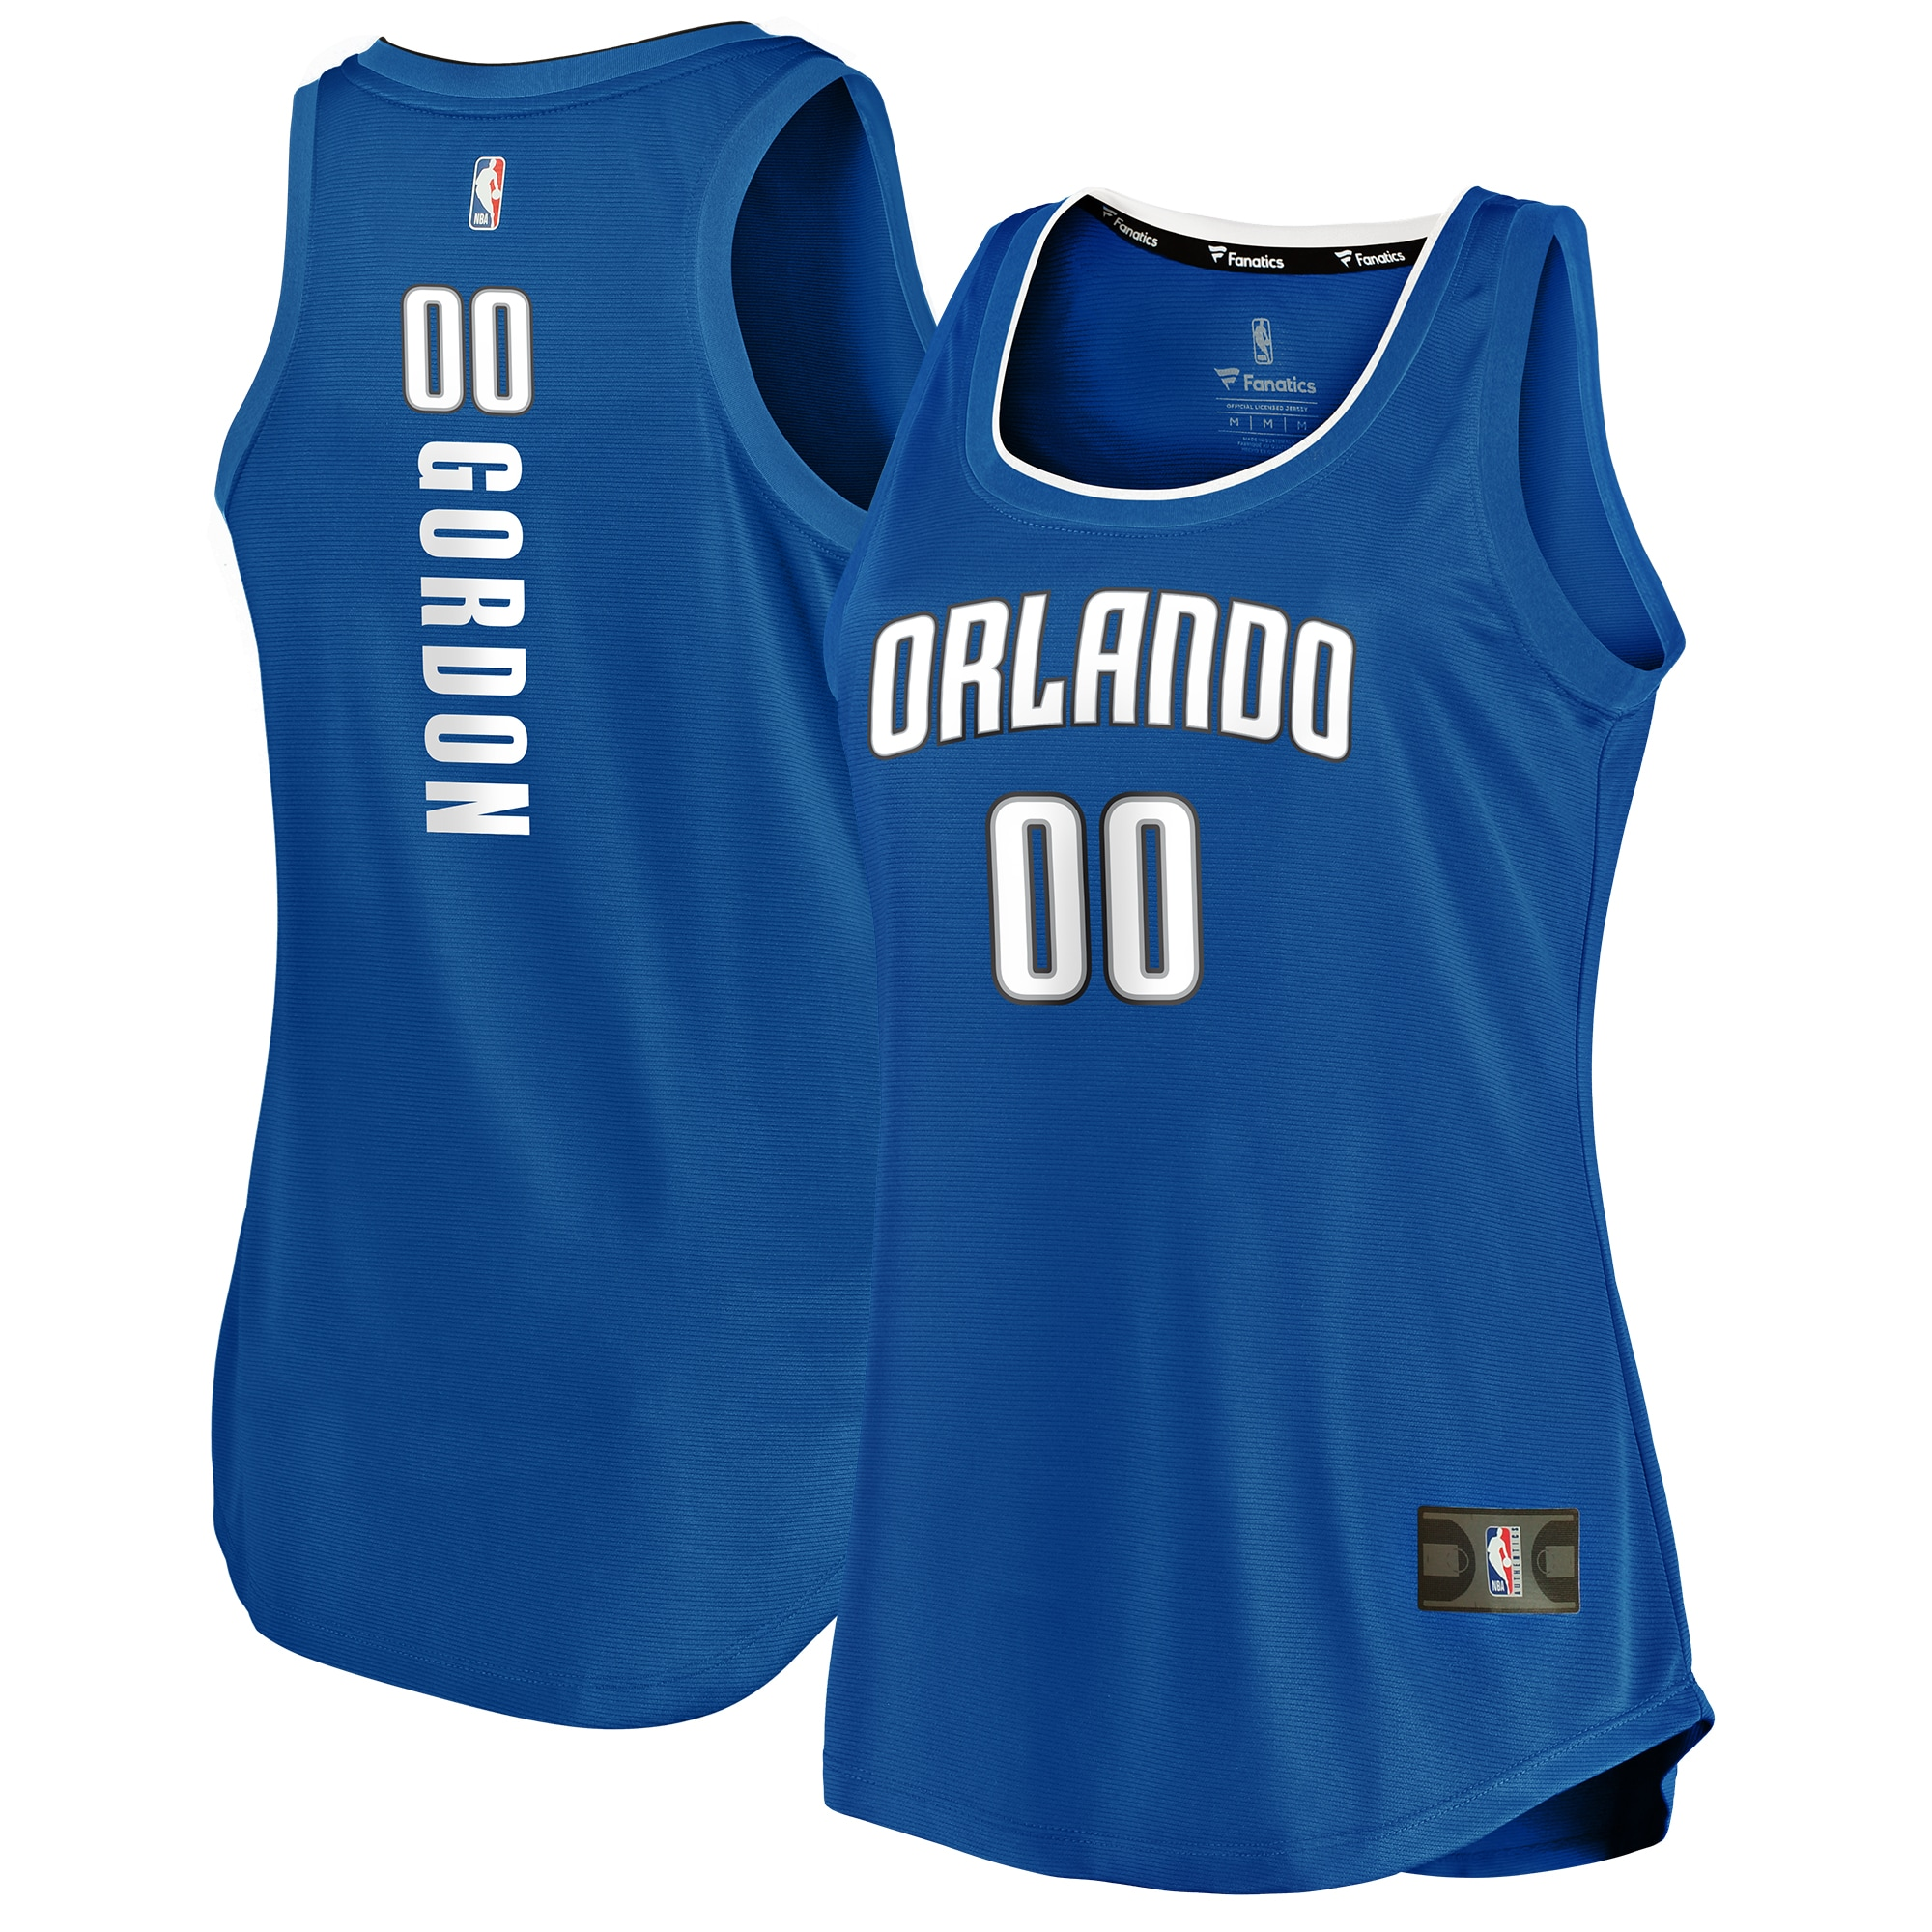 Aaron Gordon Orlando Magic Fanatics Branded Women's Fast Break Tank Jersey - Icon Edition - Blue